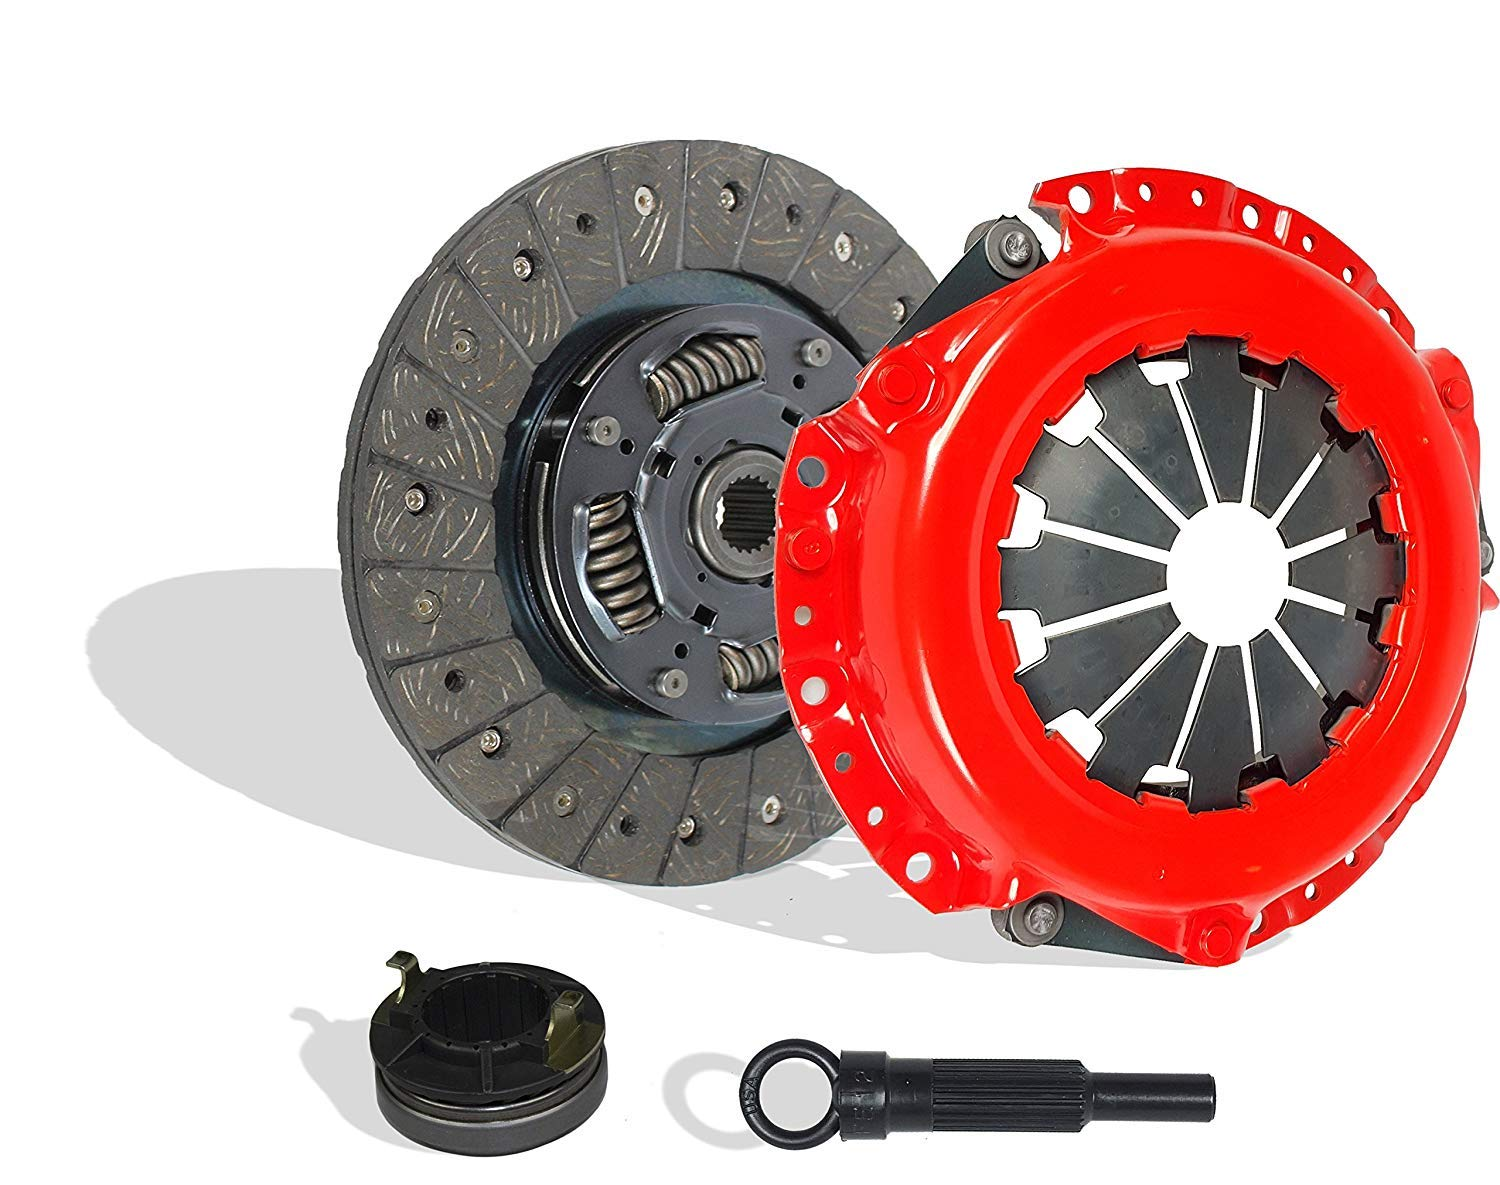 Clutch Kit Works With Kia Soul Base Lx Hatchback 4-Door 2010-2014 1.6L l4 GAS DOHC Naturally Aspirated (Stage 1)